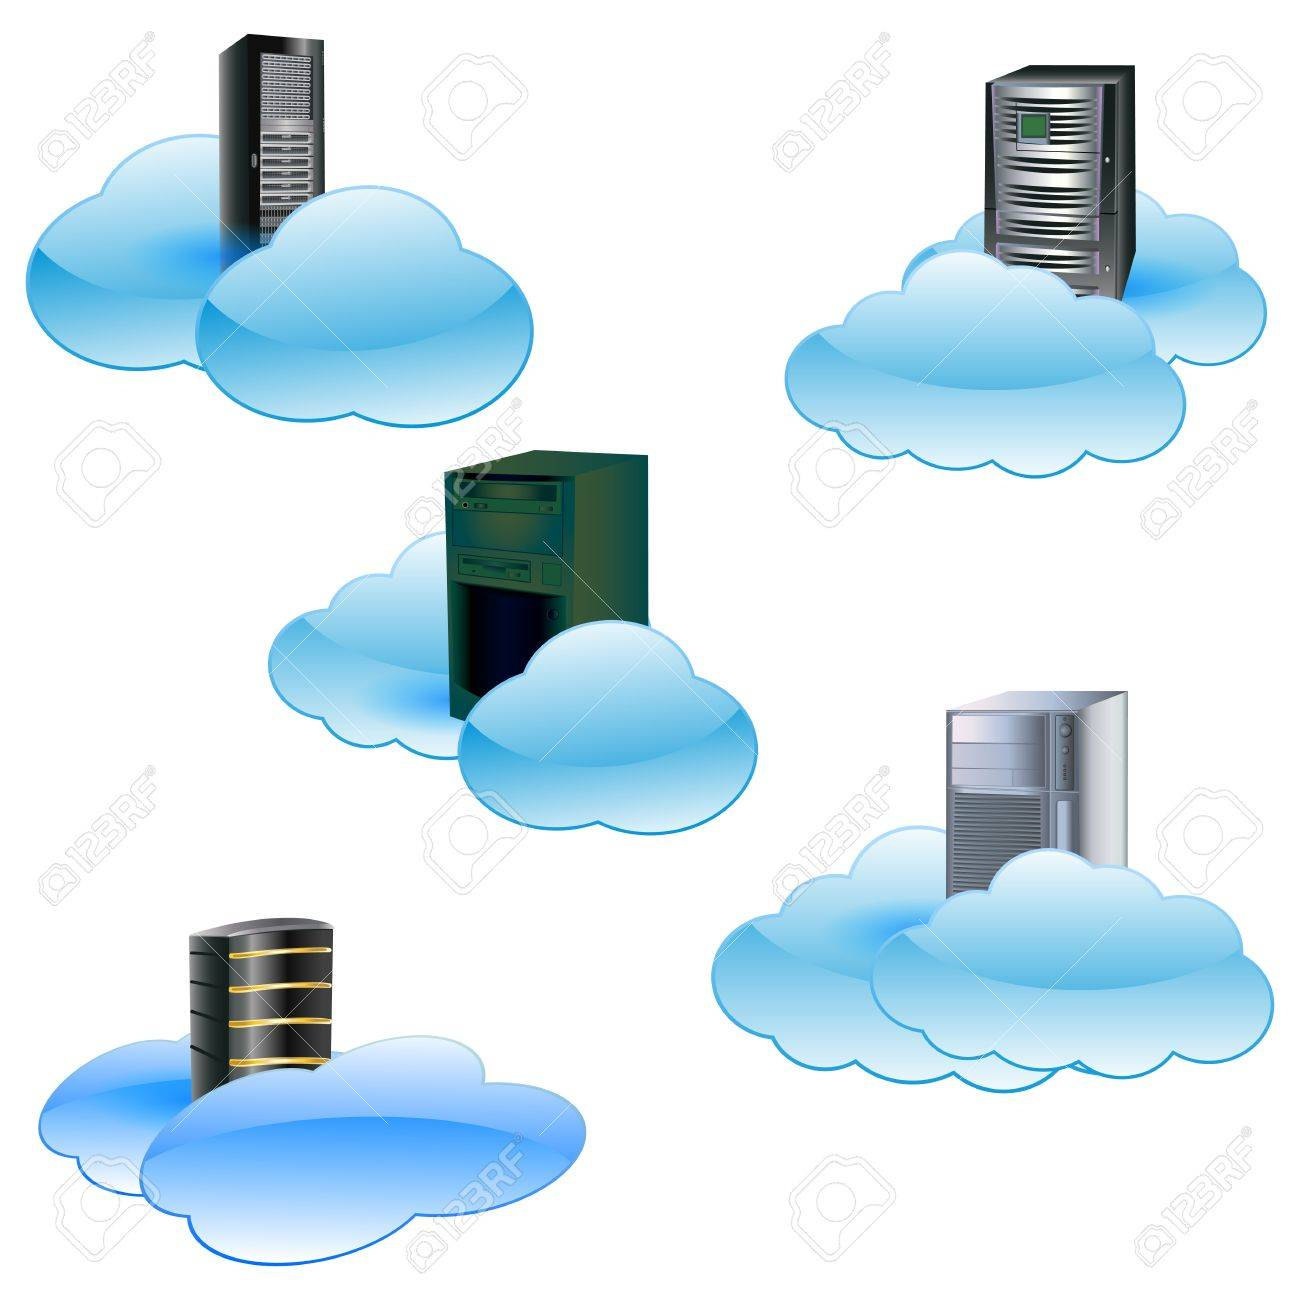 Cloud computing concept Stock Vector - 12812215